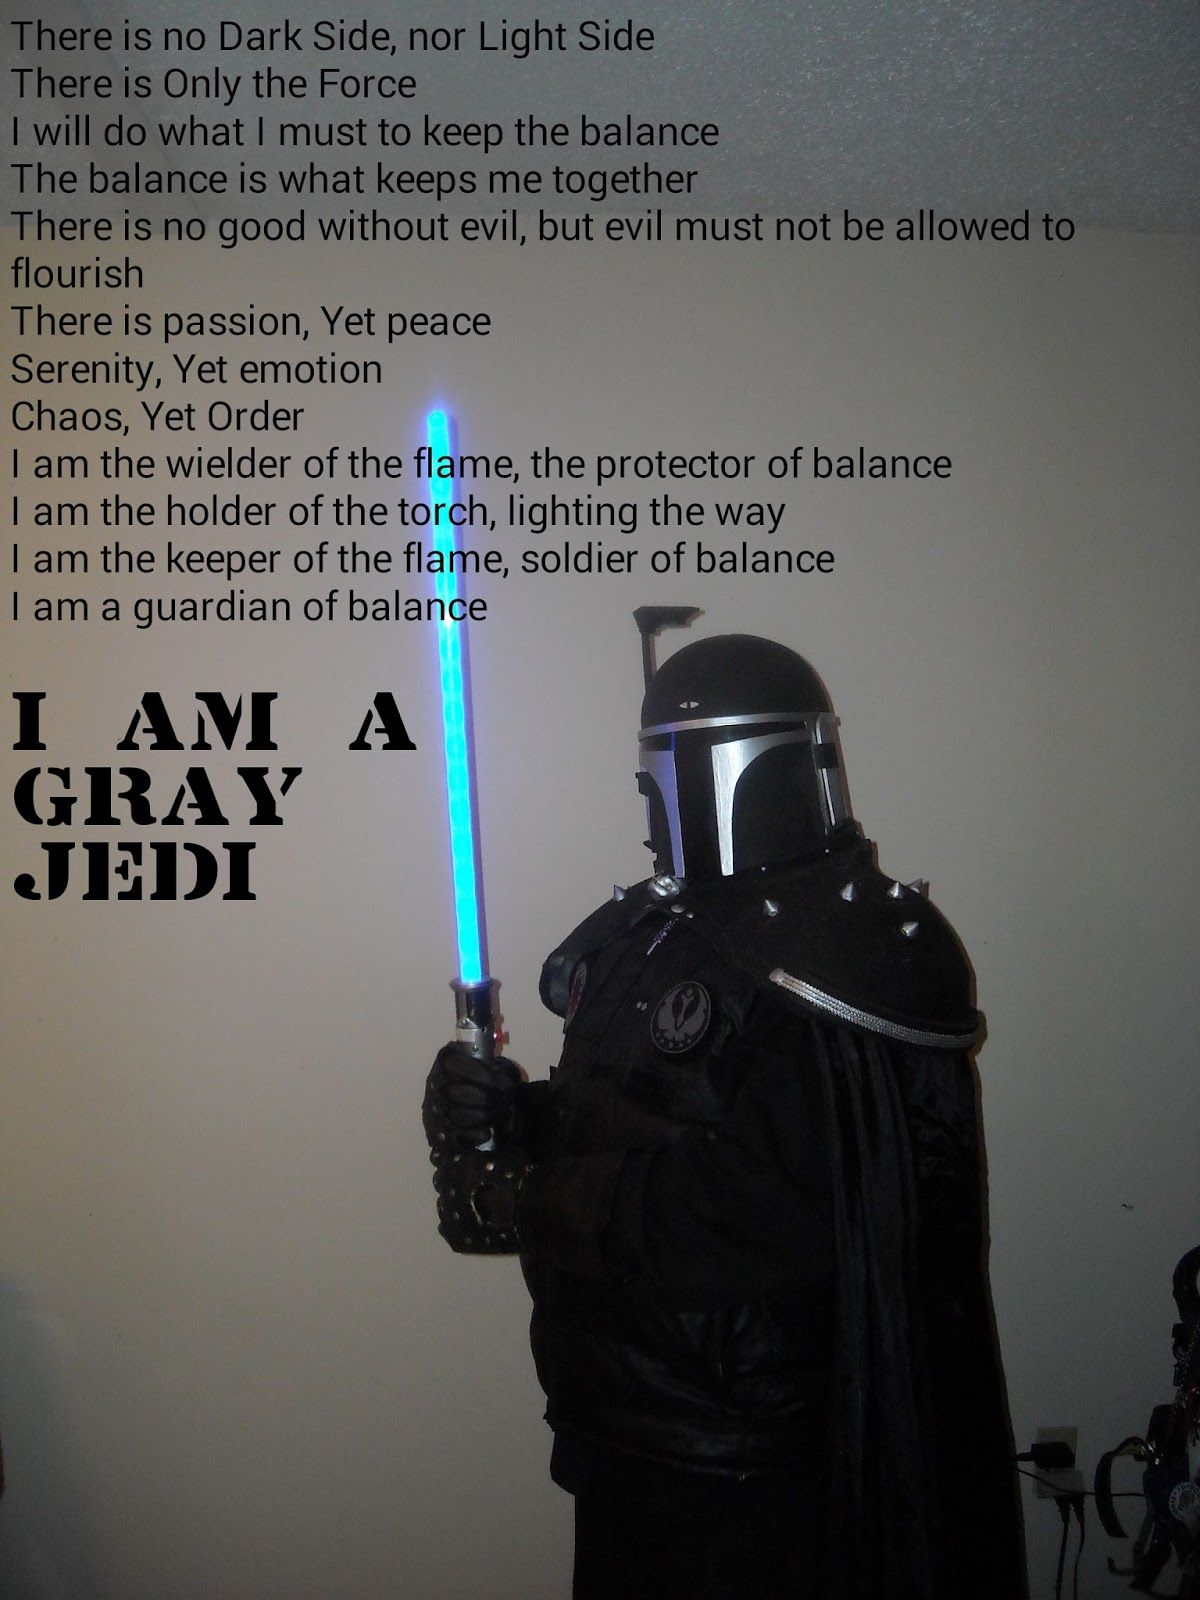 Grey Jedi Wallpaper Google Search Star Wars Quotes Grey Jedi Gray Jedi Code